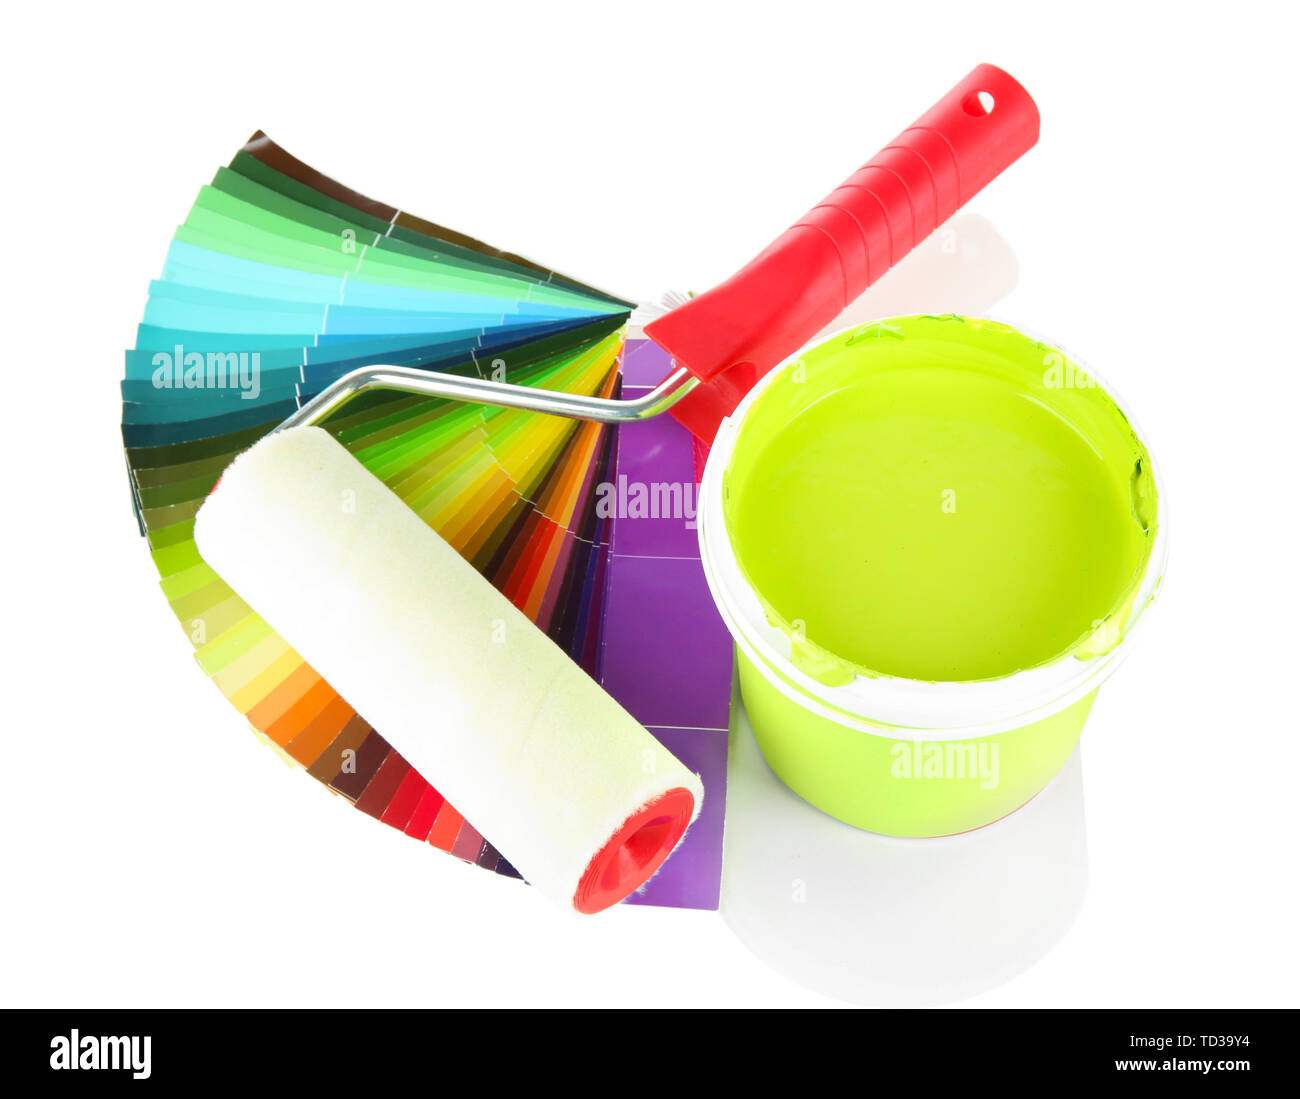 Set for painting: paint pot, paint-roller and palette of colors isolated on white - Stock Image